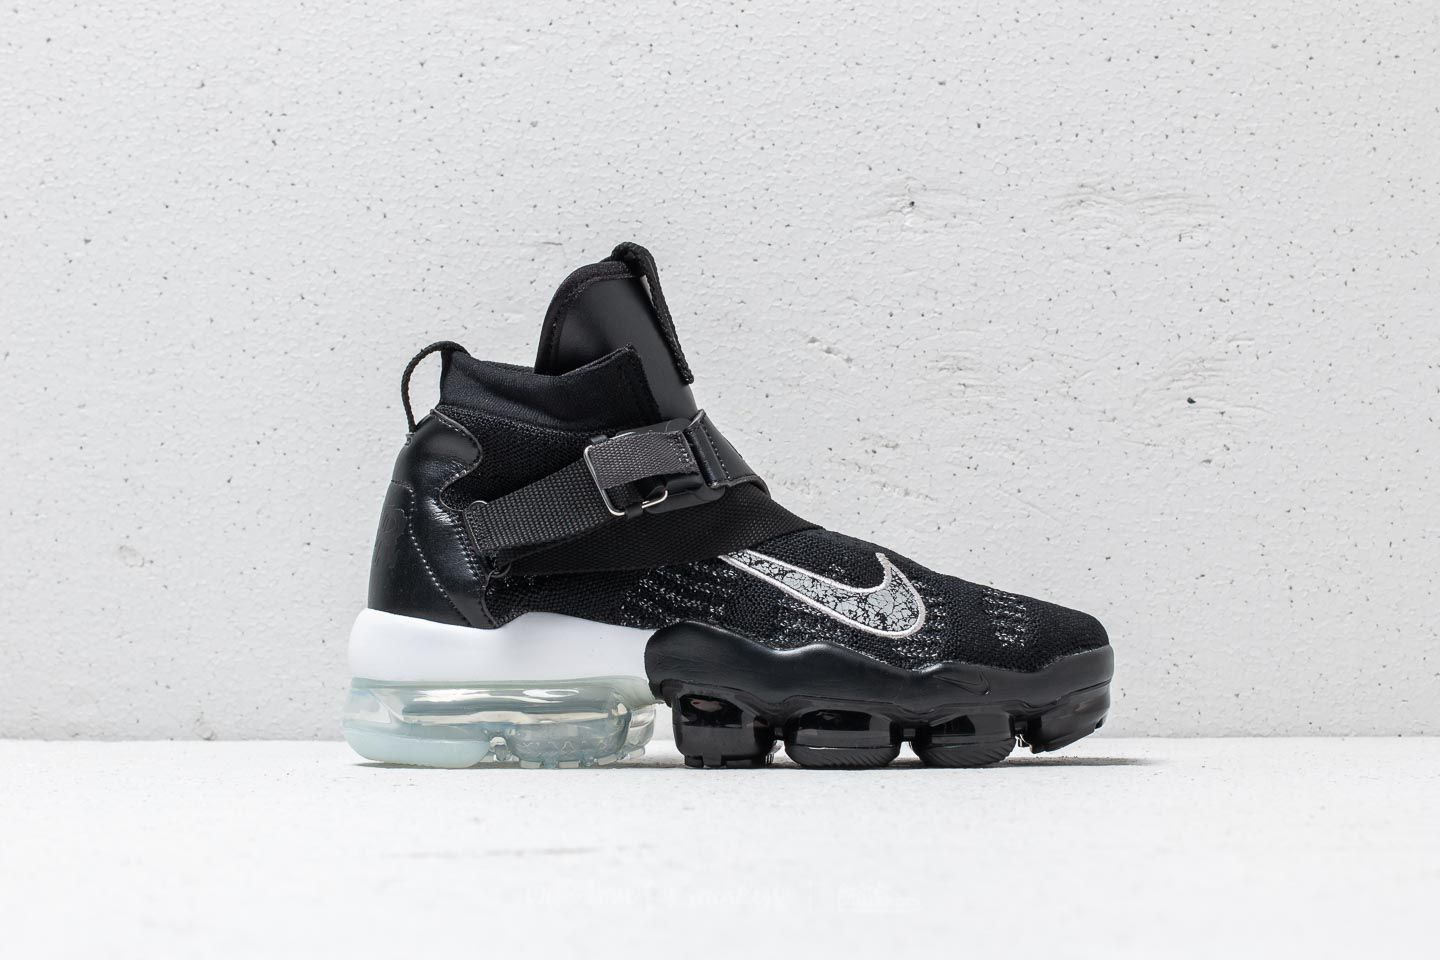 a57fe0690746 Nike Air Vapormax Premier Flyknit Black  Metallic Silver-White at a great  price  188